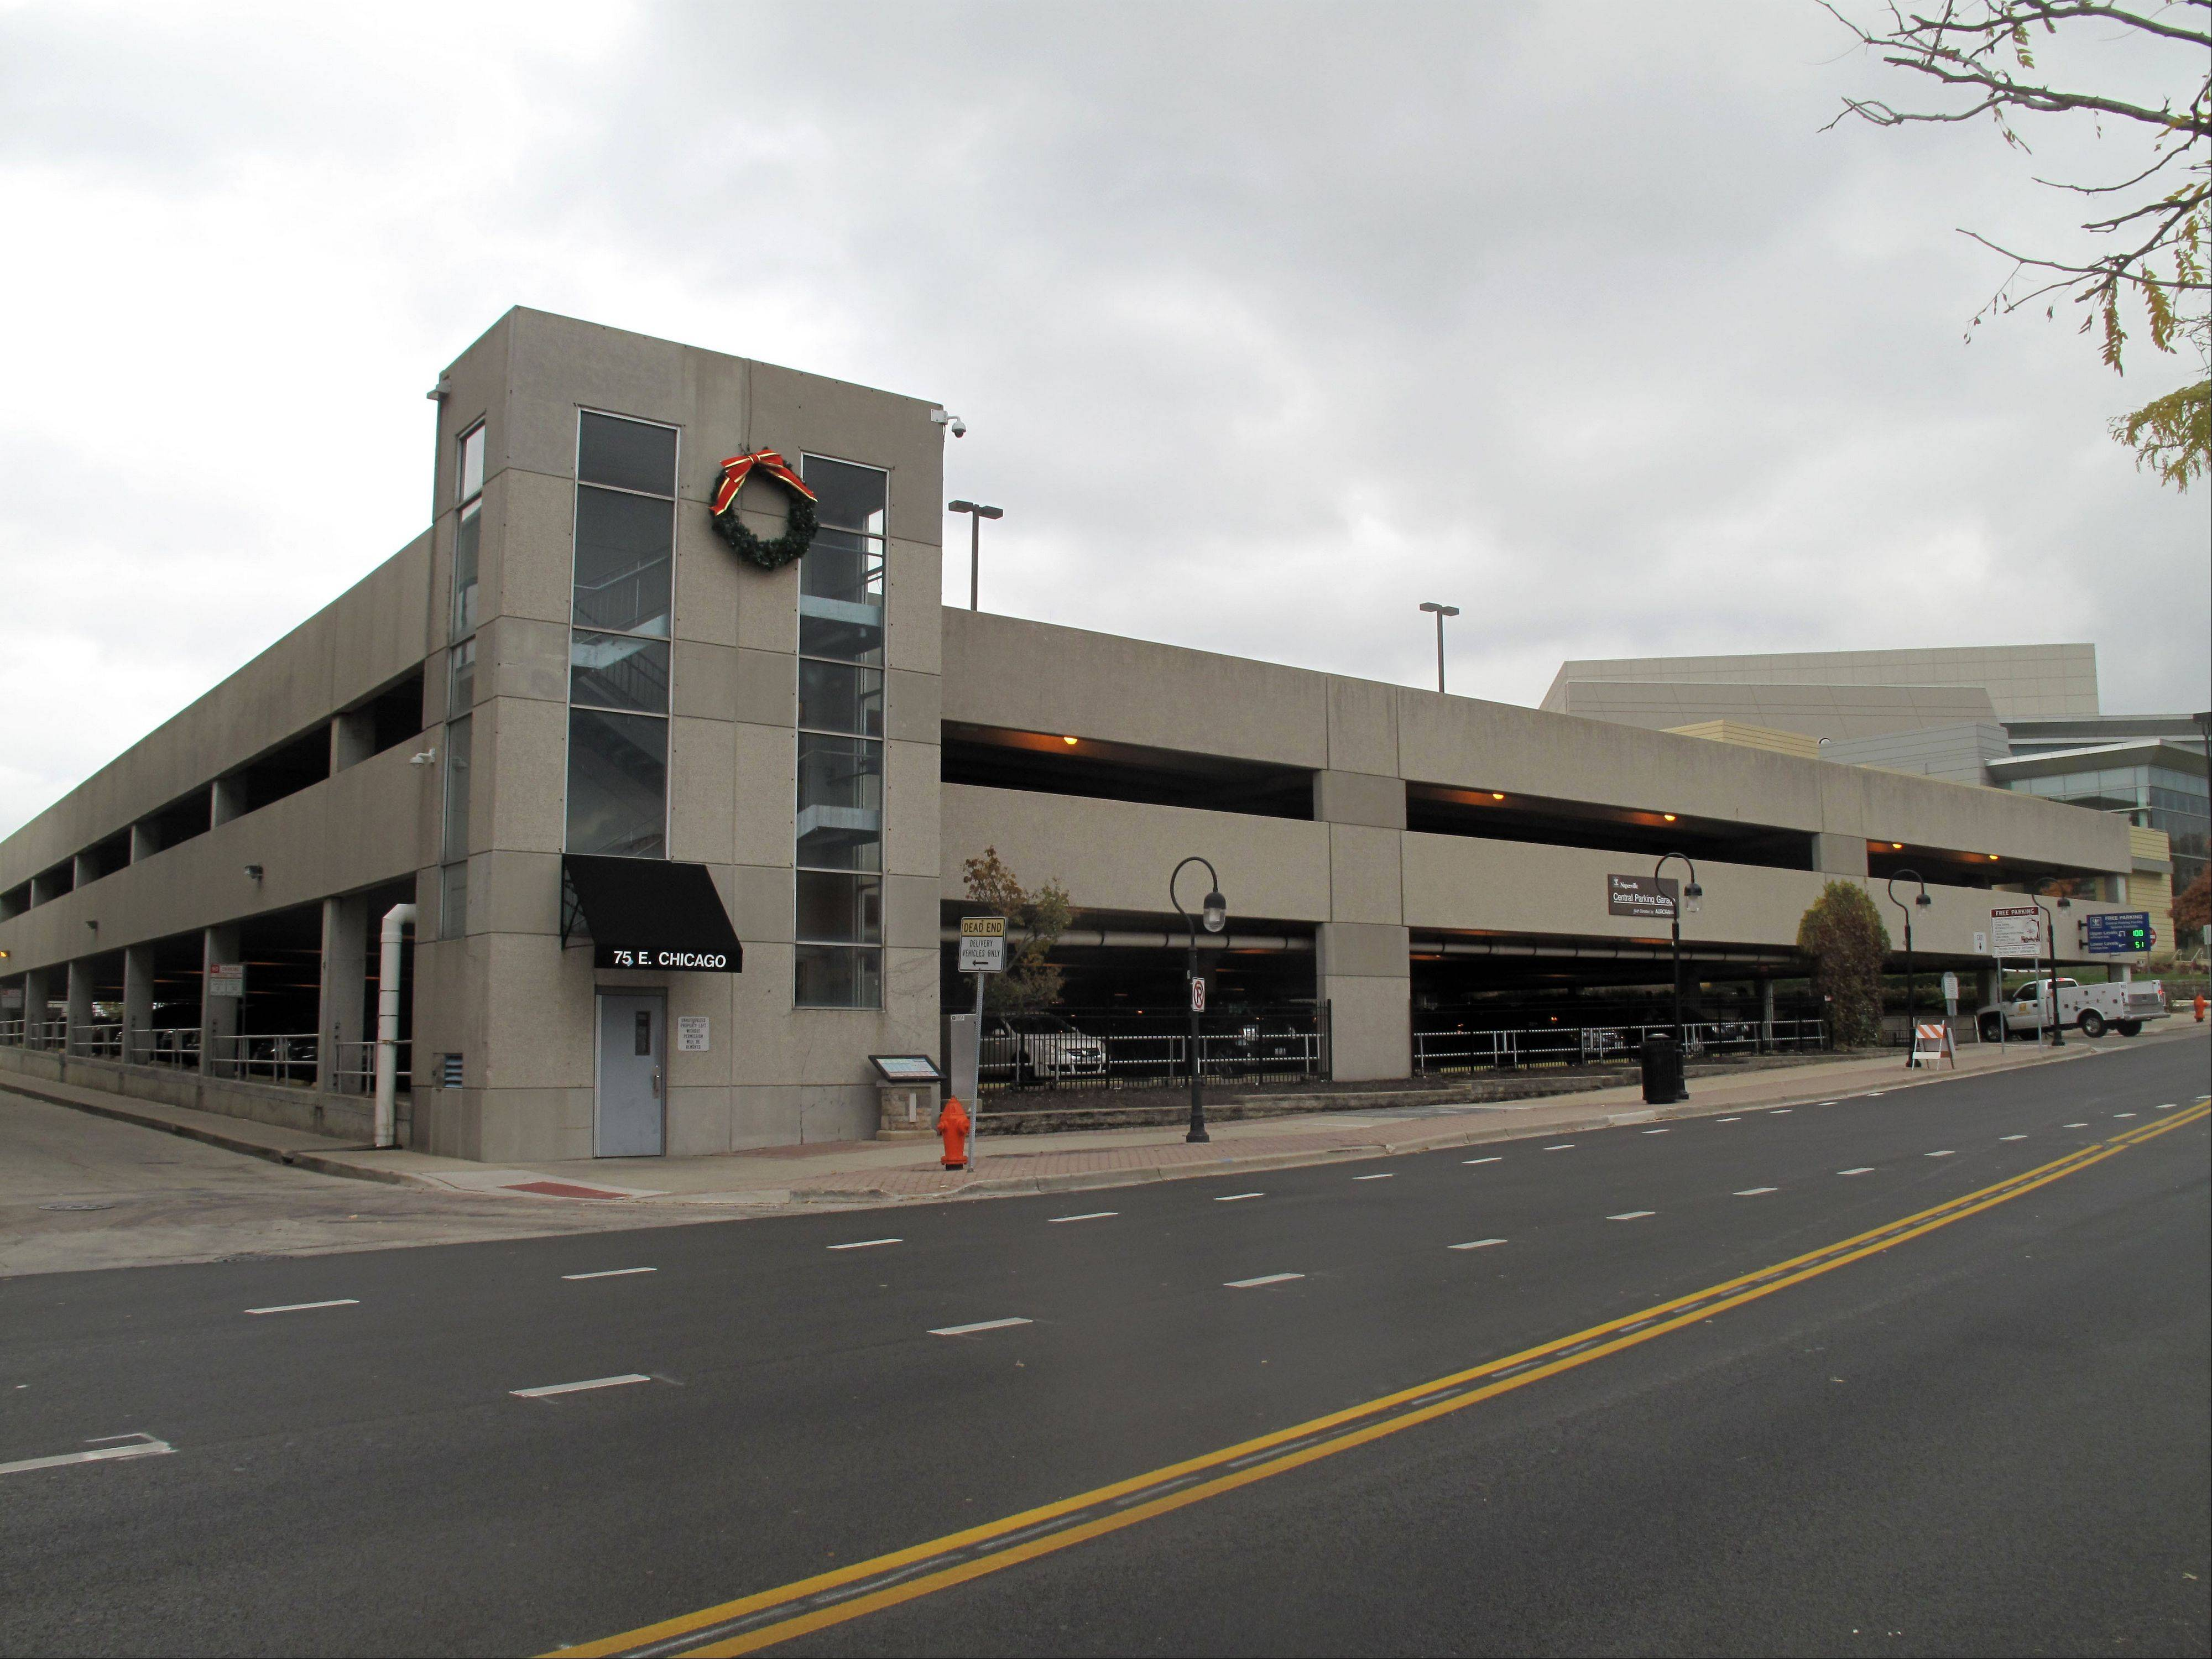 The city of Naperville is beginning to plan for expansion of the central parking facility on Chicago Avenue just east of Washington Street in downtown Naperville. Reconstruction could begin in about two years after a new parking deck opens at the Water Street District.